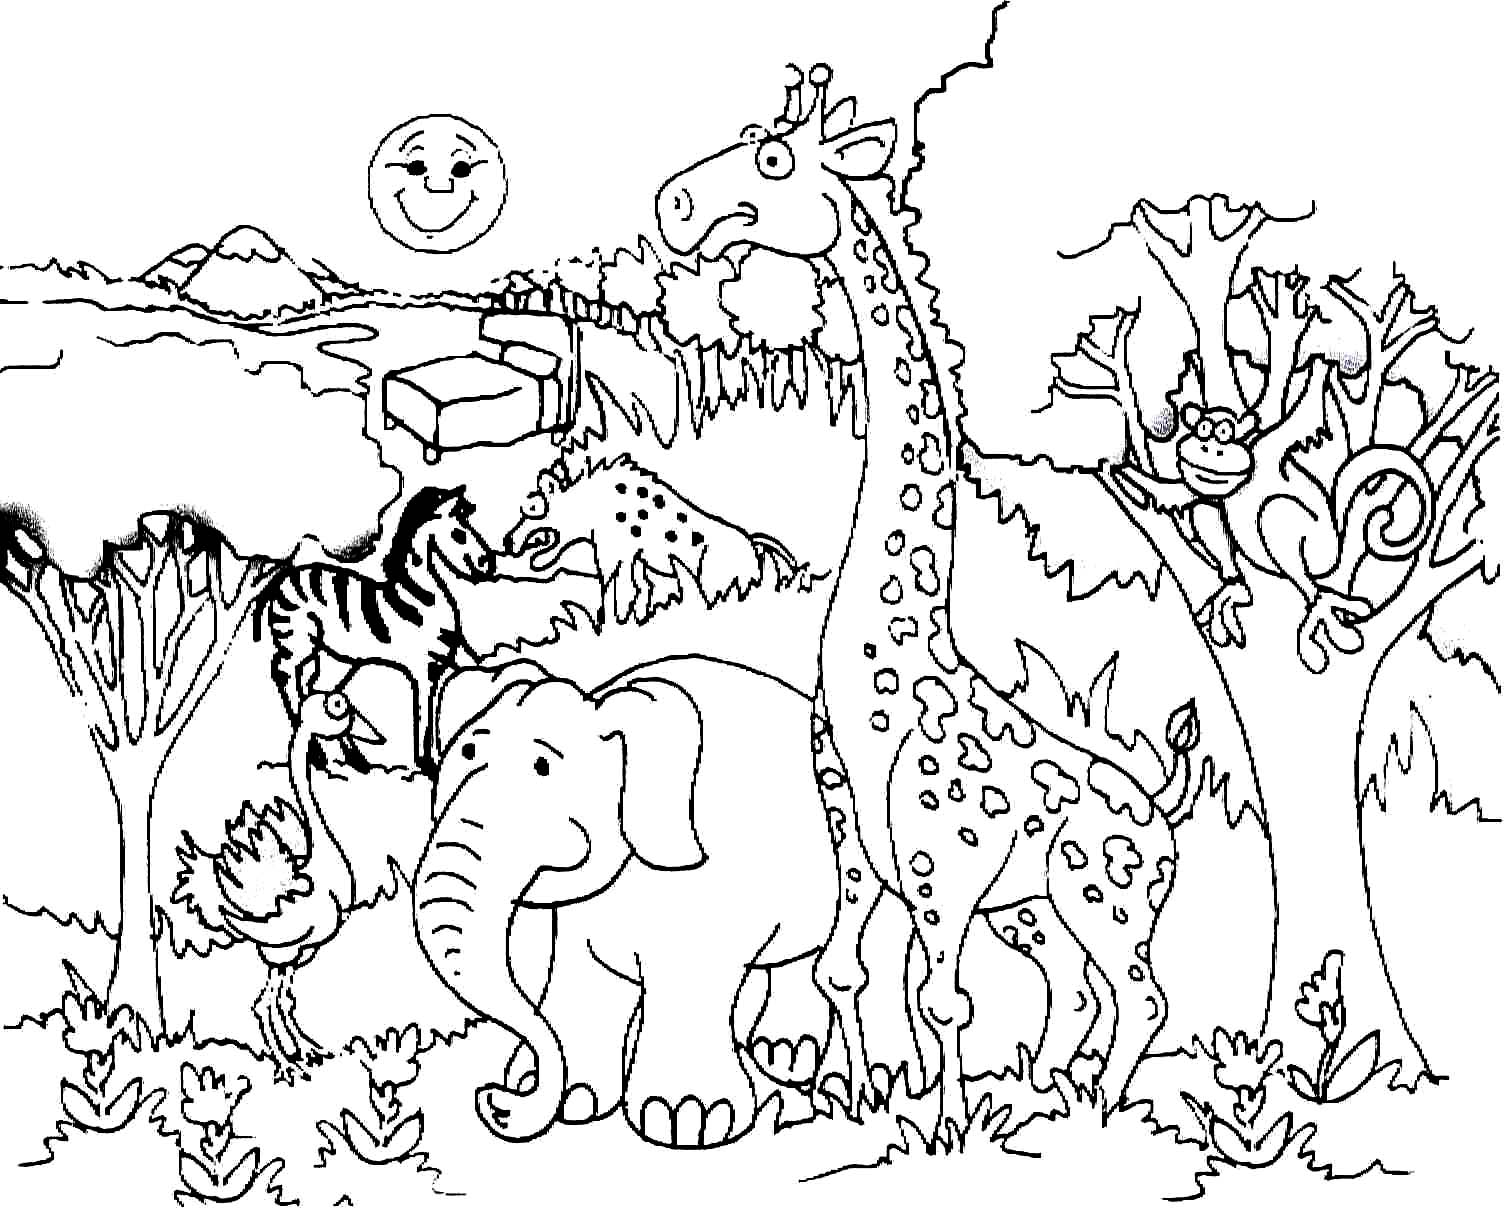 Giraffe Coloring Pages For Adults At Getdrawings Com Free For